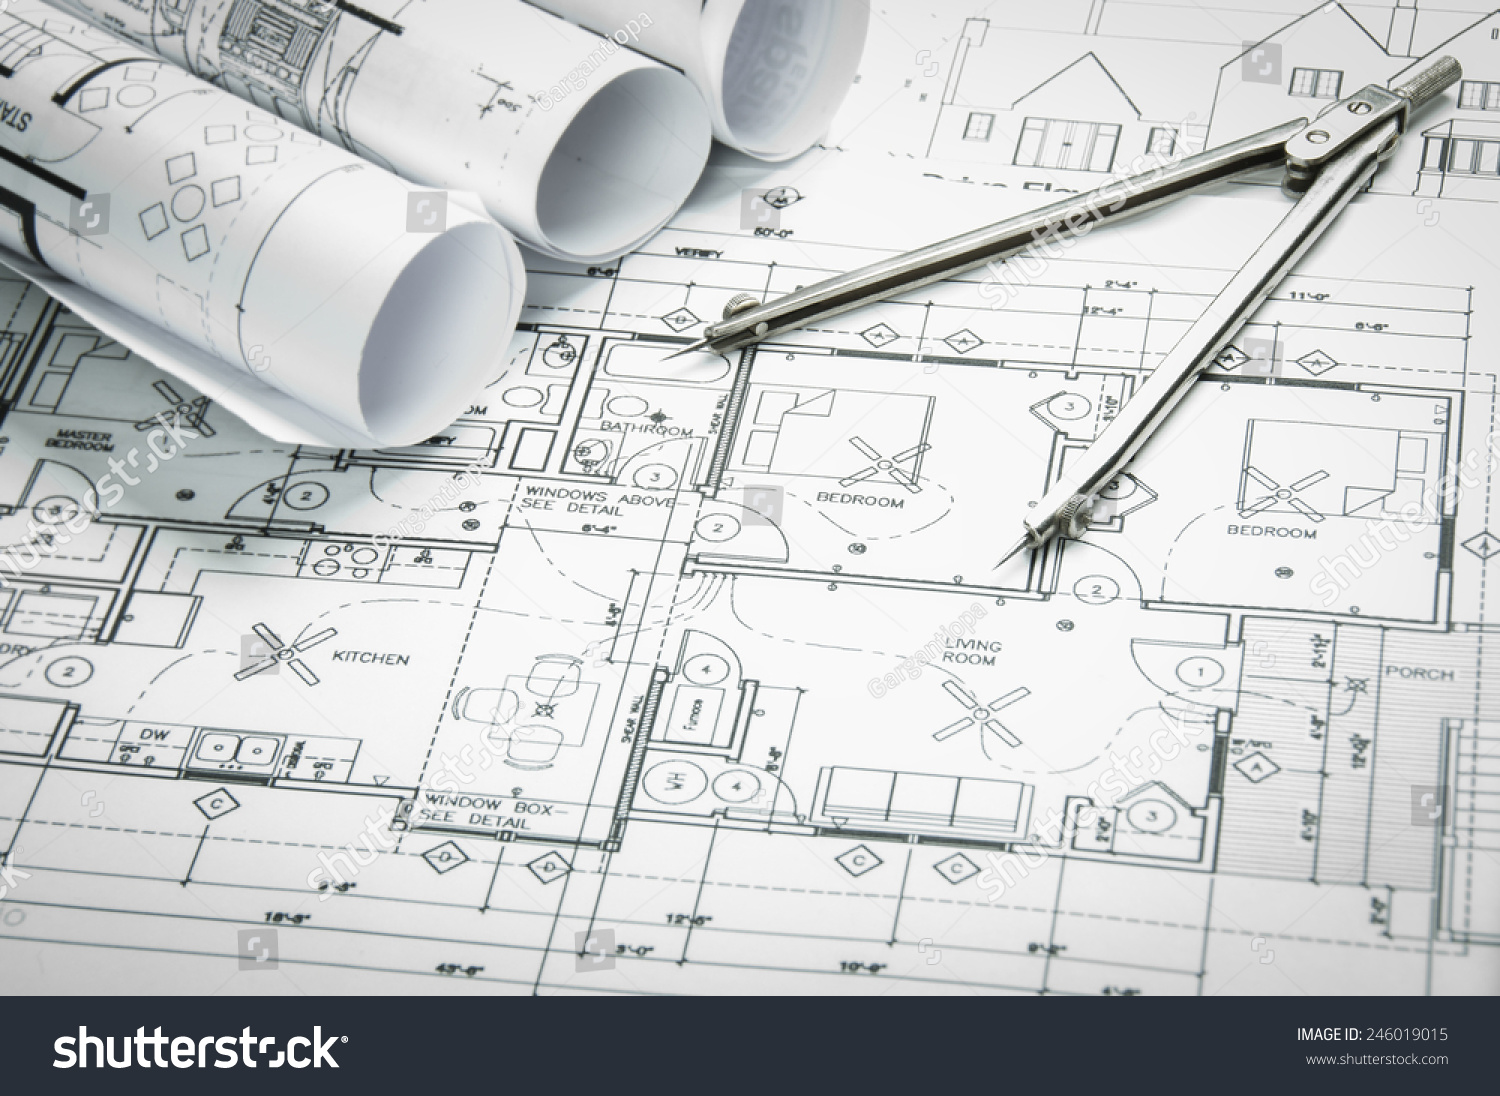 Architecture Drawing Instruments architectural blueprints blueprint rolls drawing instruments stock